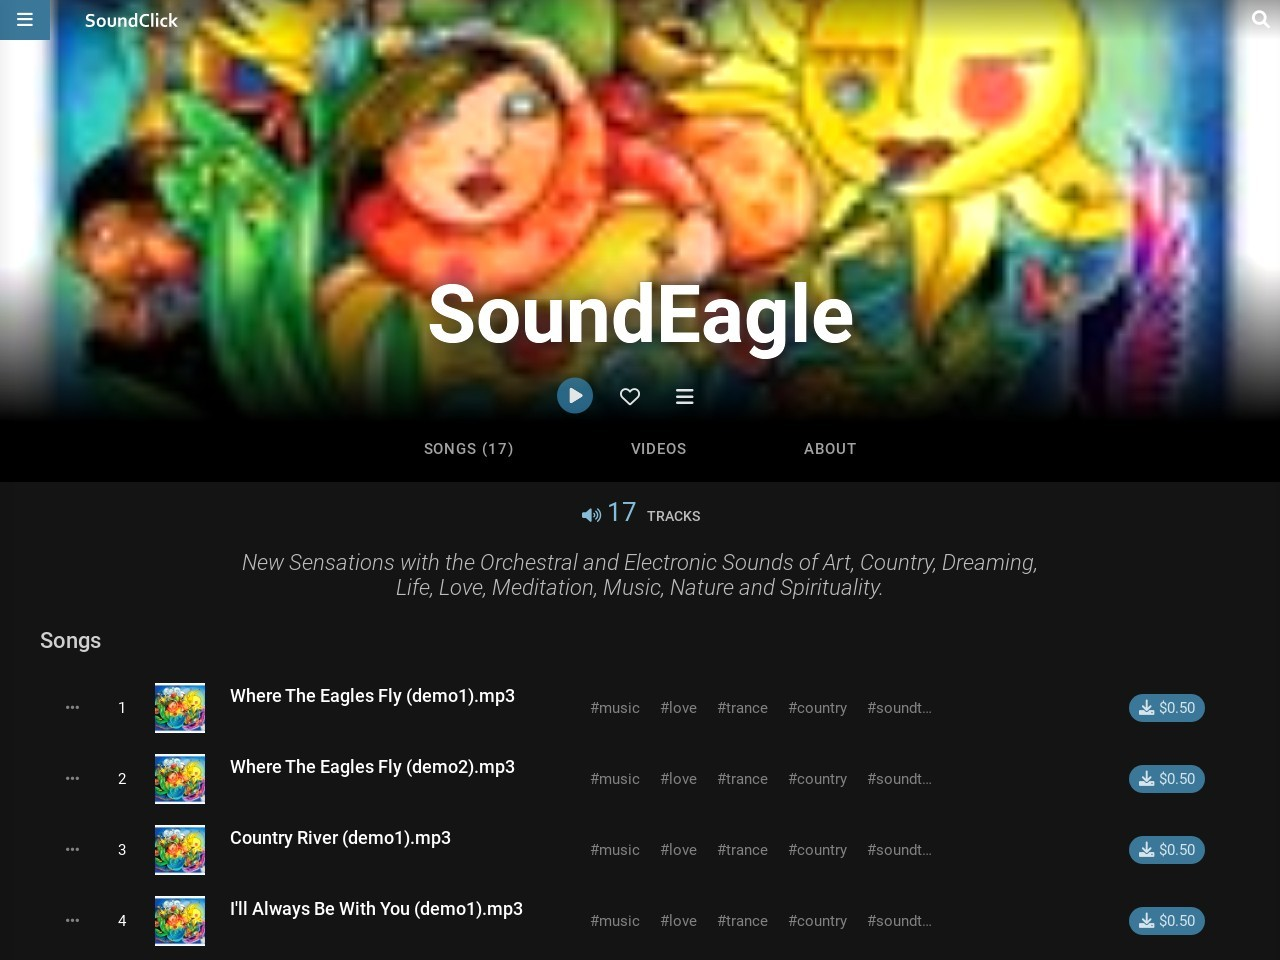 SoundEagle on SoundClick